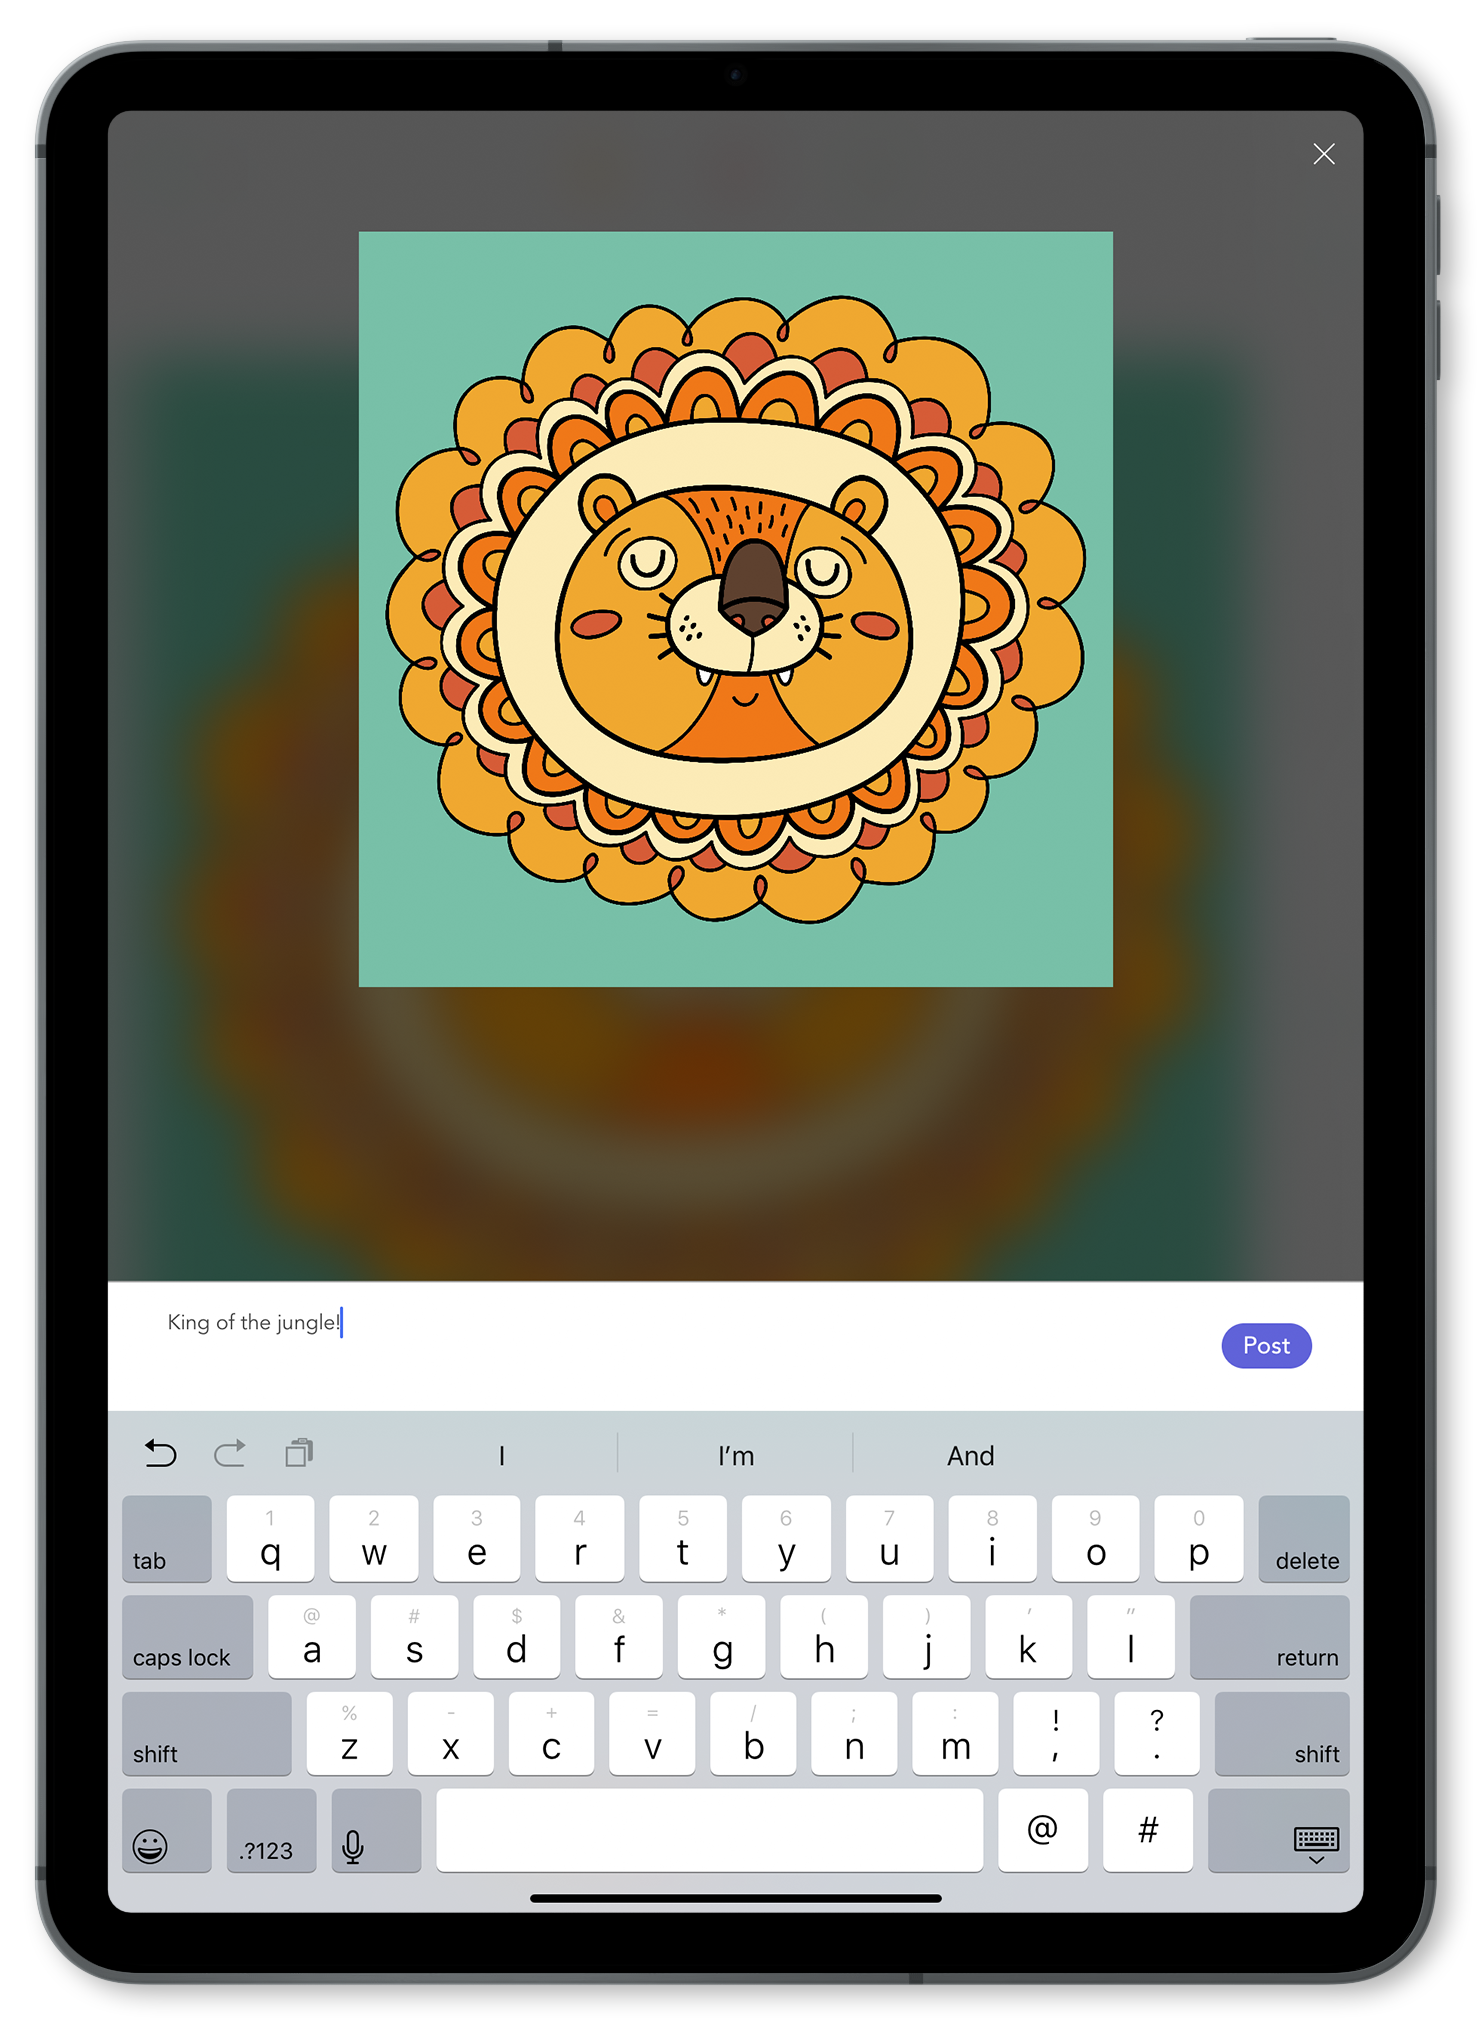 Post Message - To finish posting your coloring to the Gallery, write a description and then tap Post.Your design will be instantly added to the Gallery.